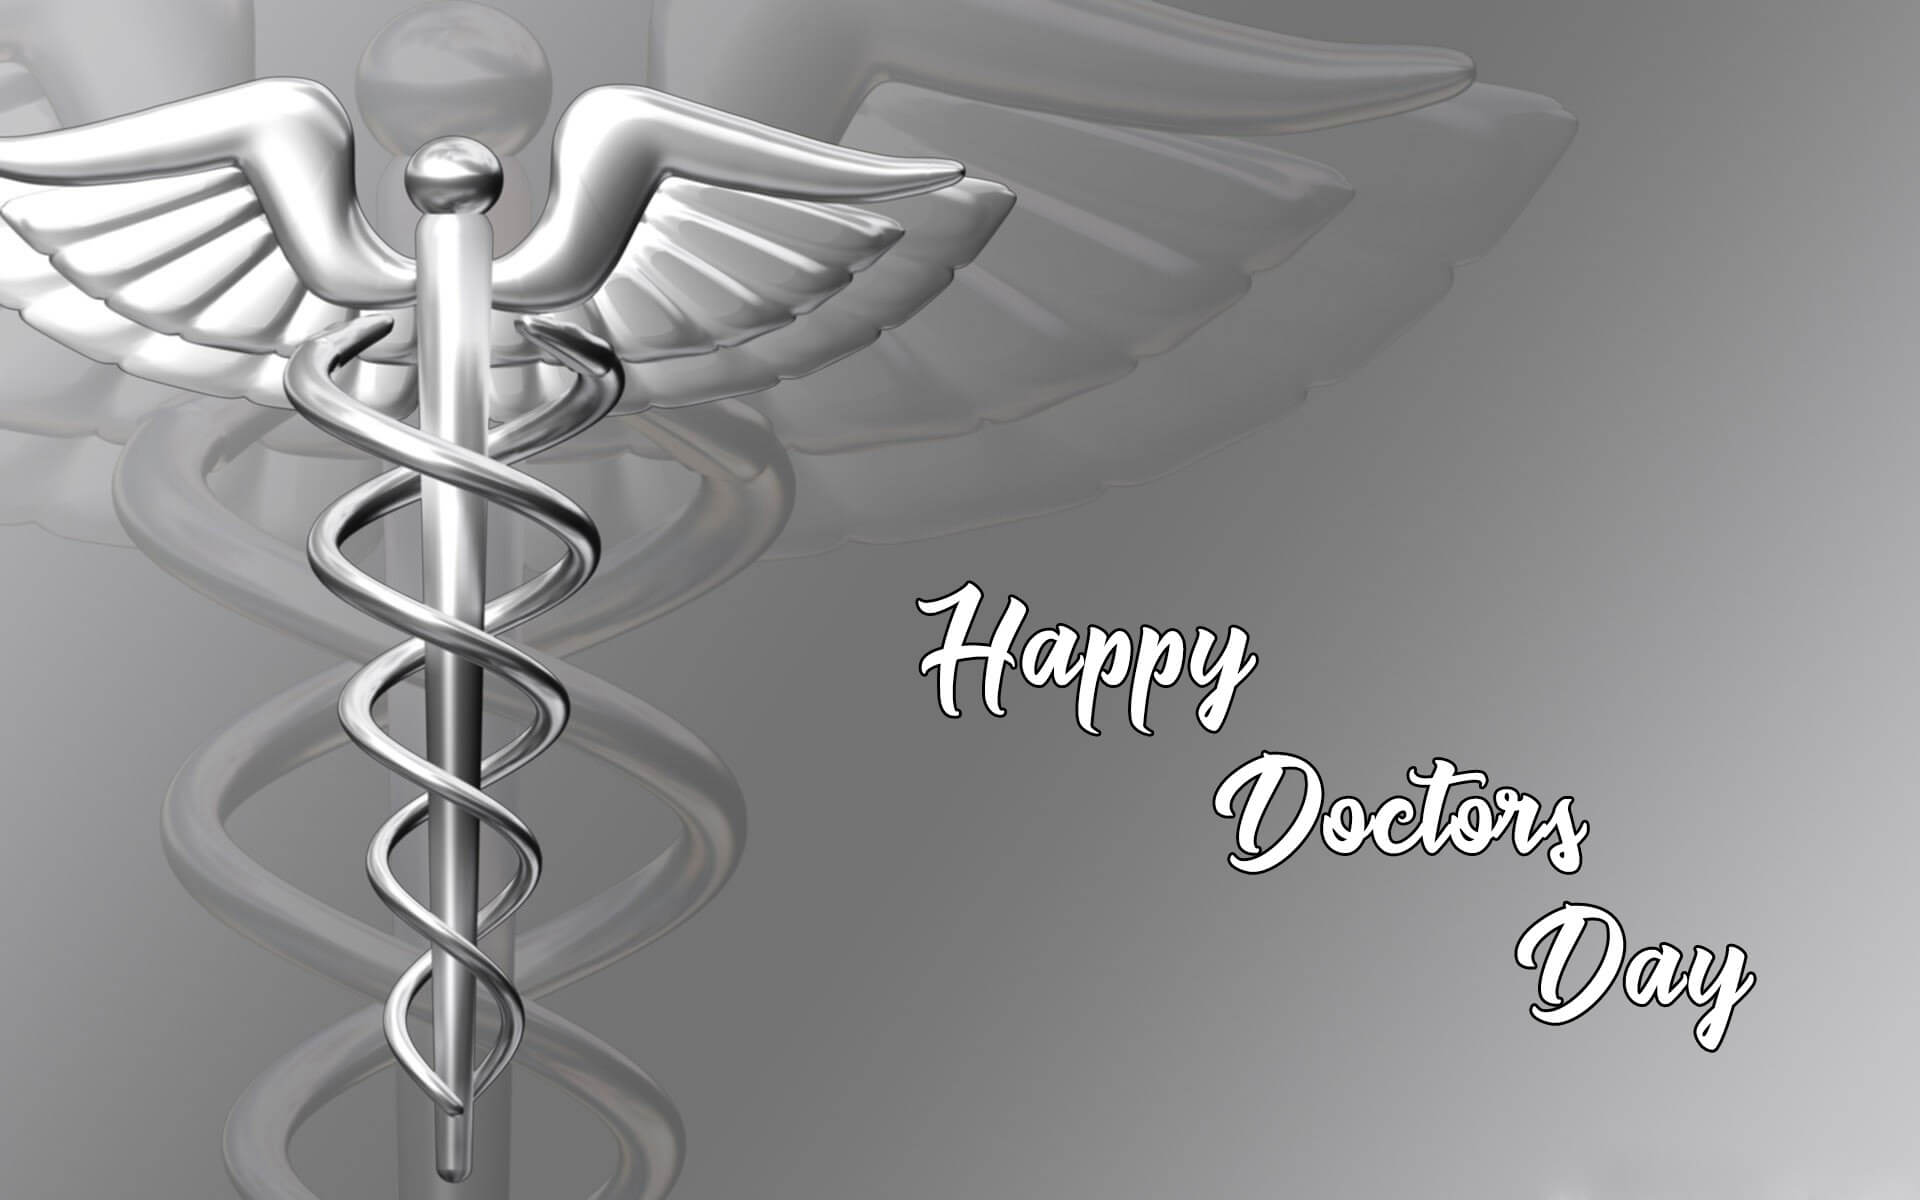 happy doctors day wishes greetings symbol hd wallpaper